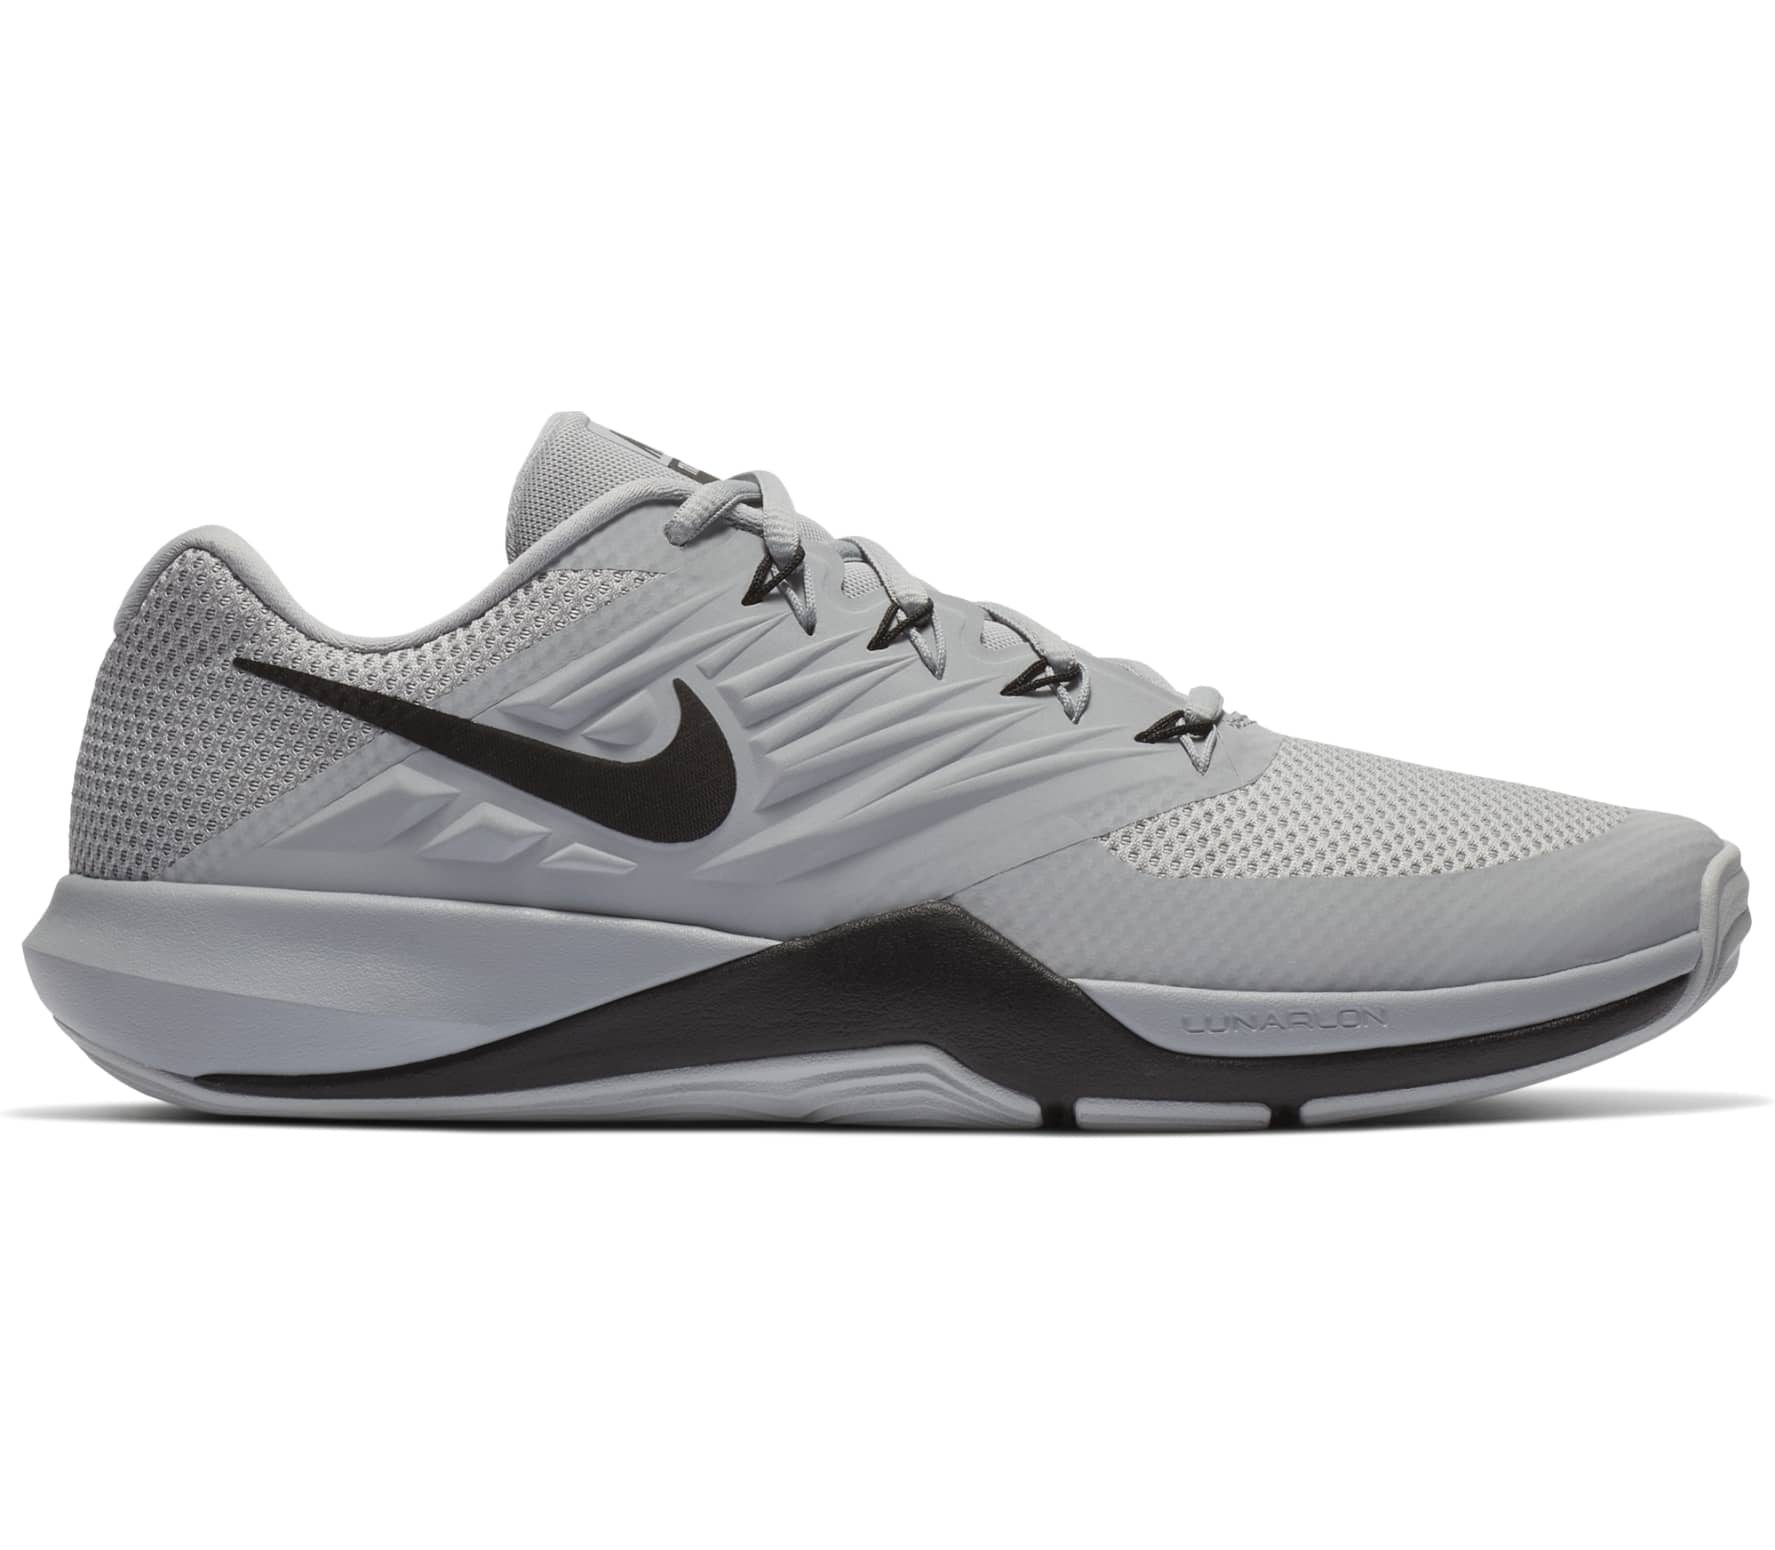 86148689717d8 Nike - Lunar Prime Iron II men s training shoes (grey) - buy it at ...